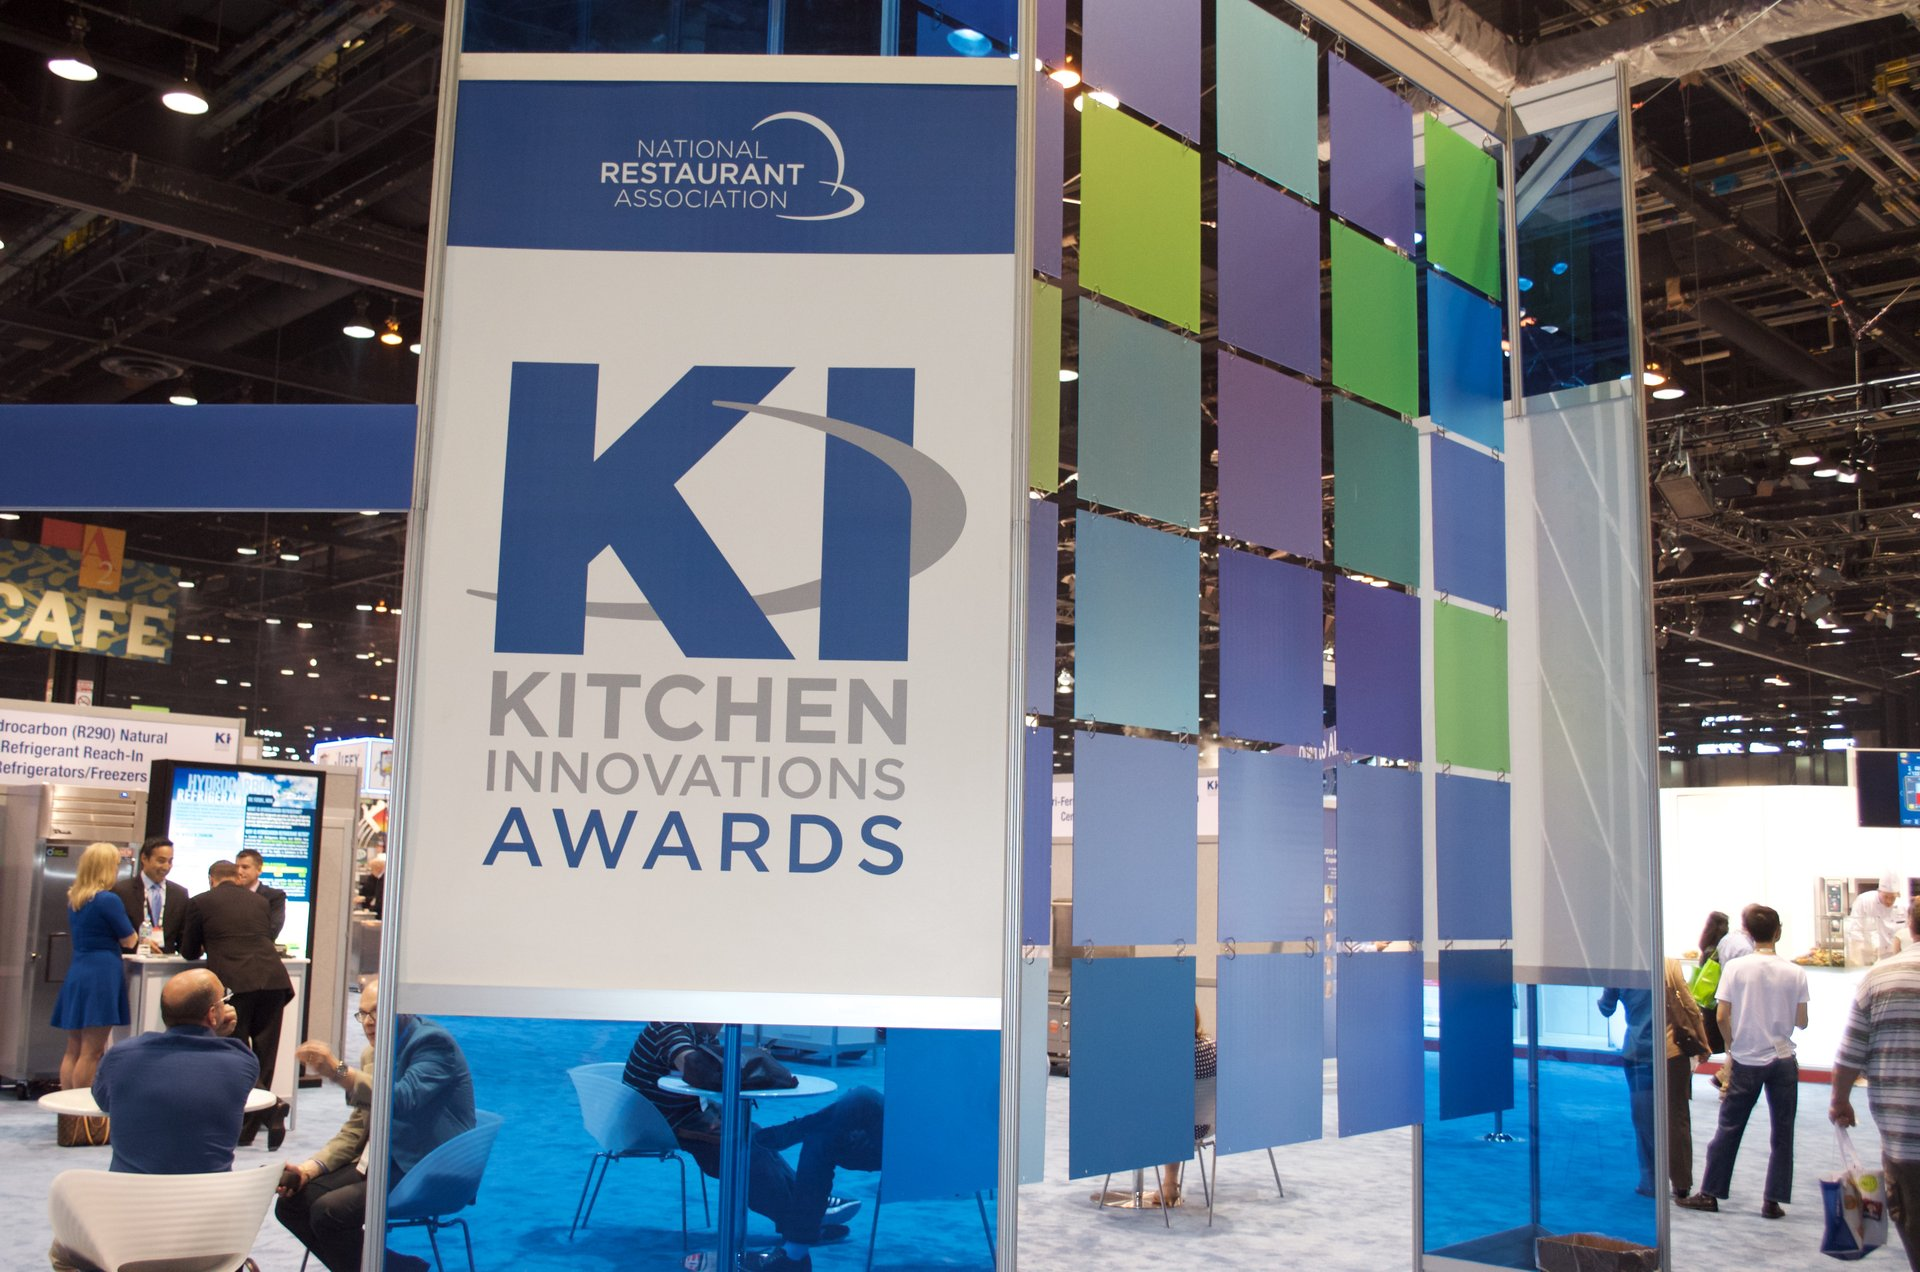 the national restaurant - Kcheninnovationen 2015